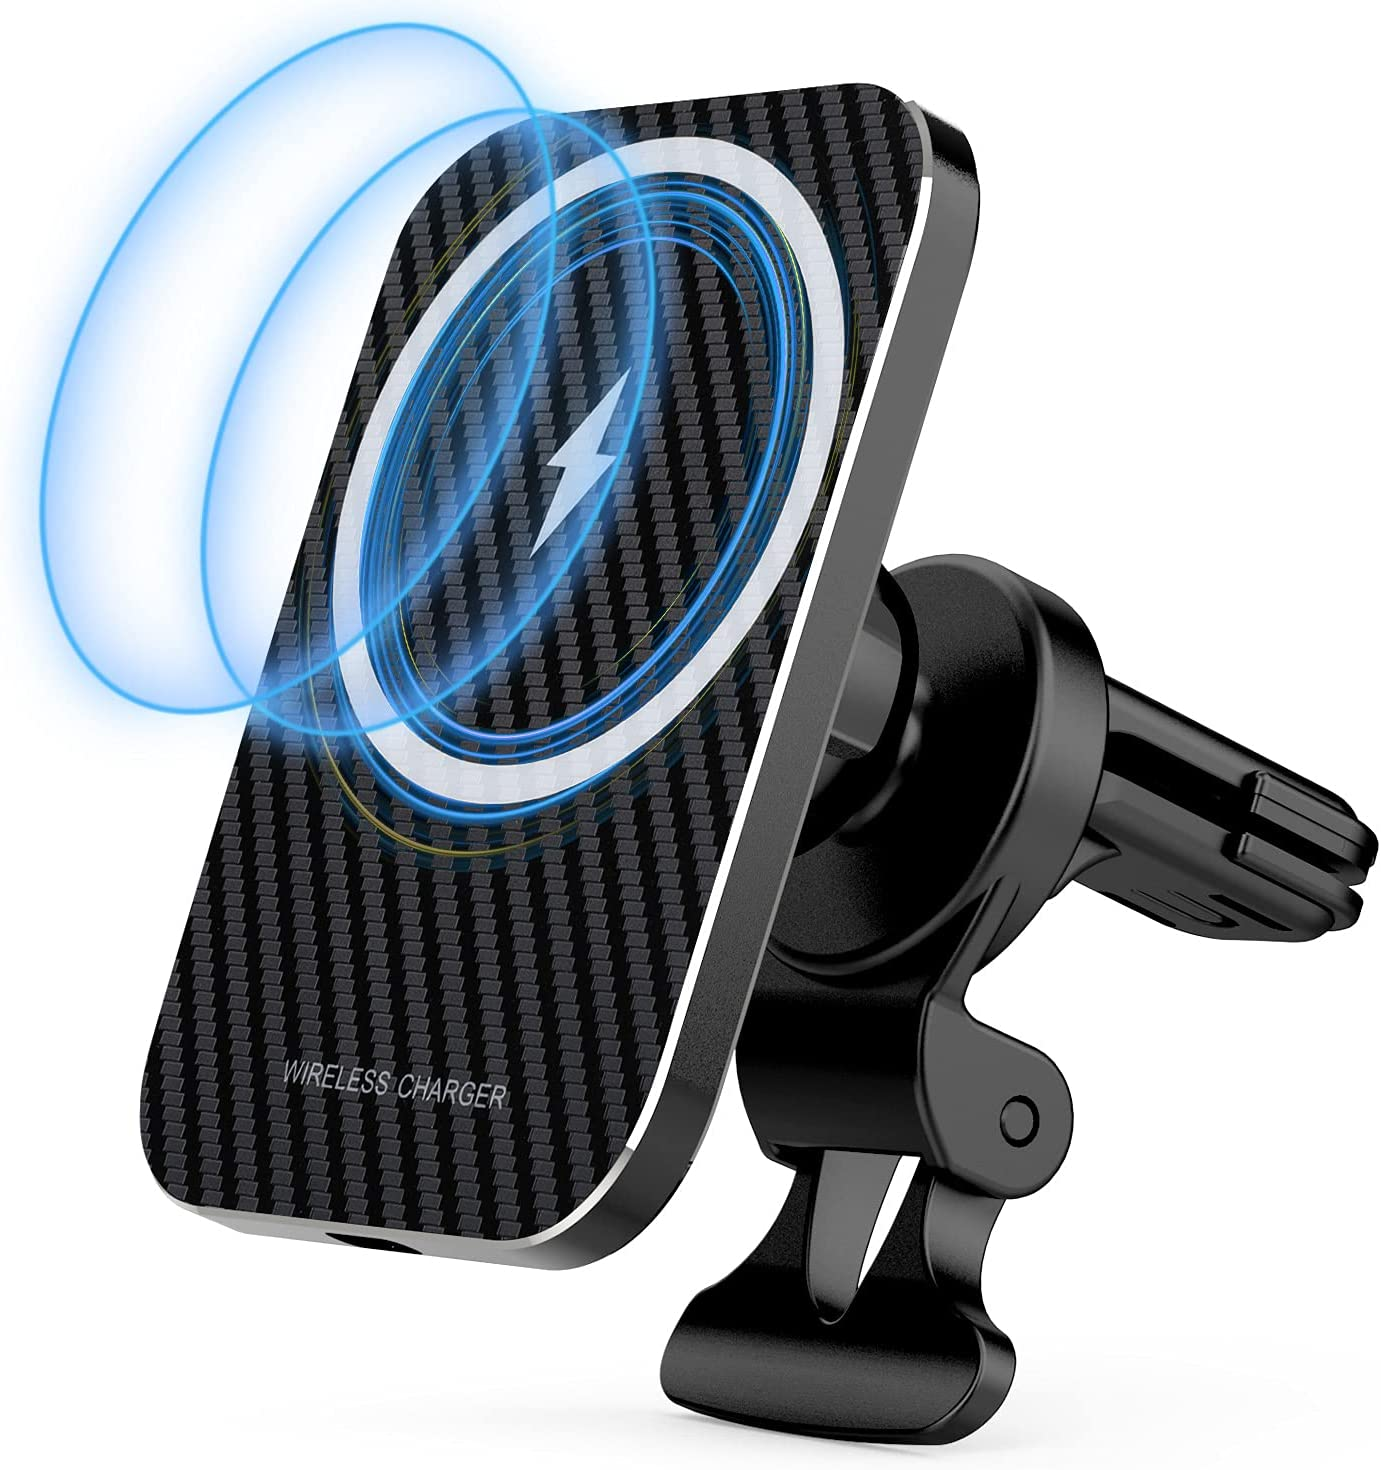 Magnetic Wireless Car Charger for iPhone 12/12 Pro/ 12 Pro Max/ 12 Mini, Magnet Fast 15W Mag-Safe Car Charger Air Vent Mount (Keeps All iPhone 12 Models Magnetically Mounted While You Drive)